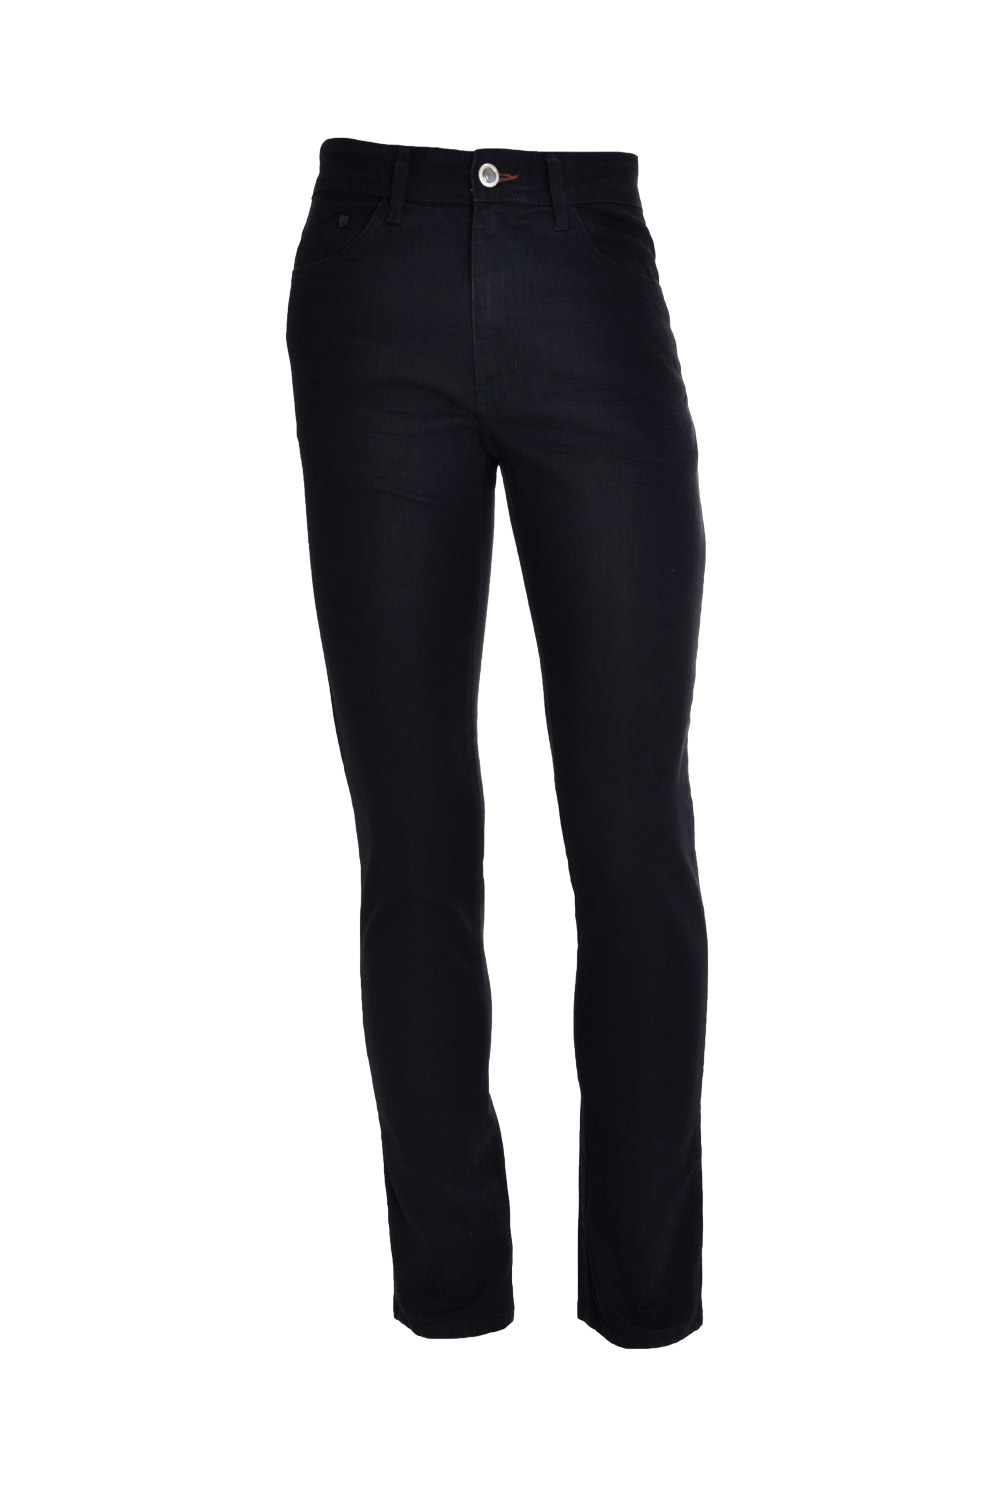 CALÇA JEANS BLUES SLIM POLIALGODAO & ELASTANO STRETCH STONED PRETO